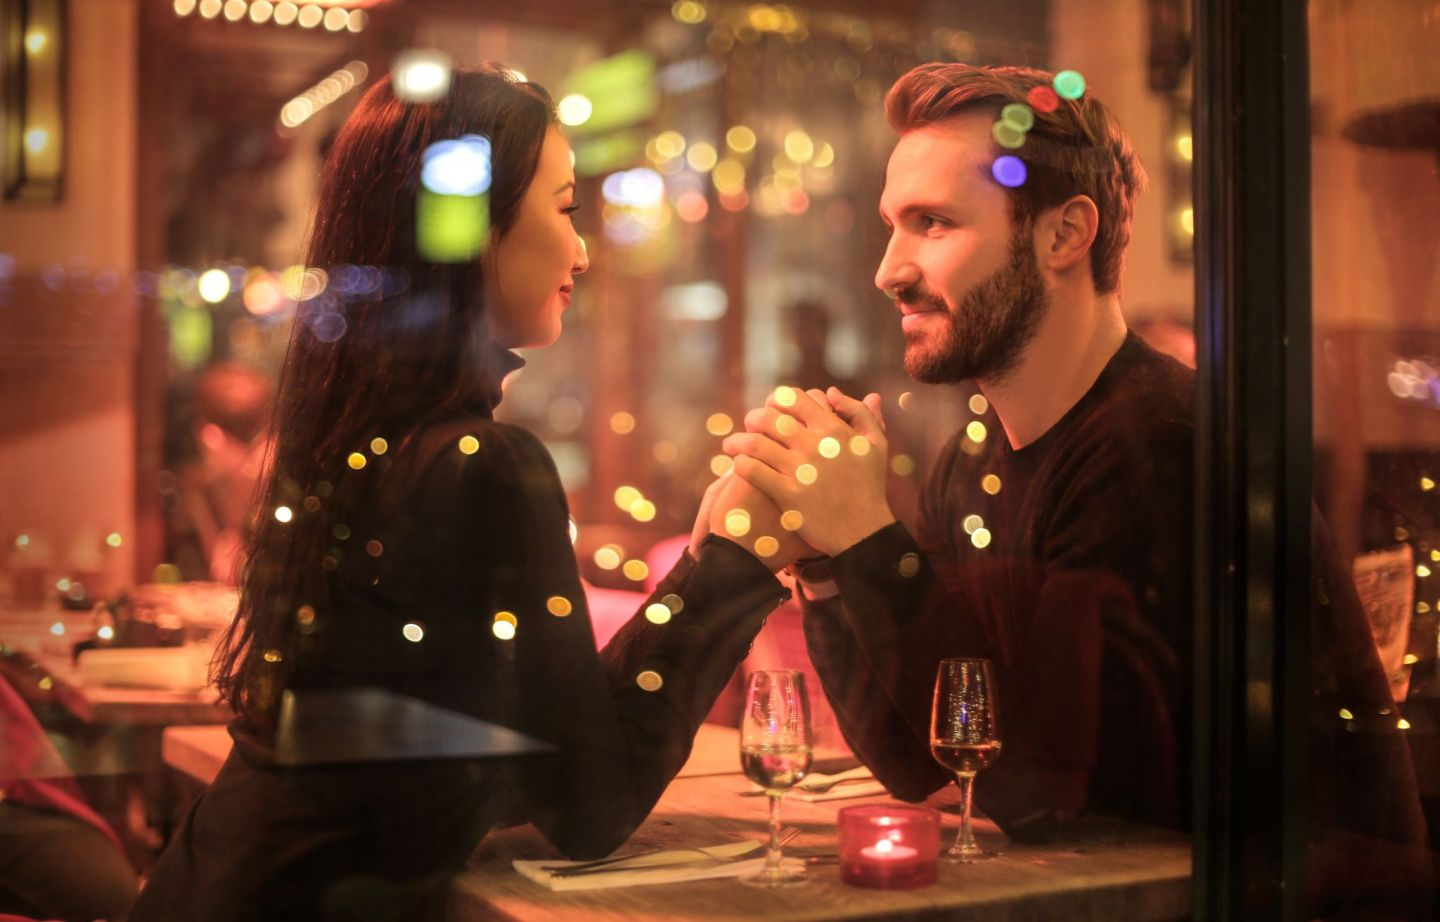 7 things to NOT do during a first date